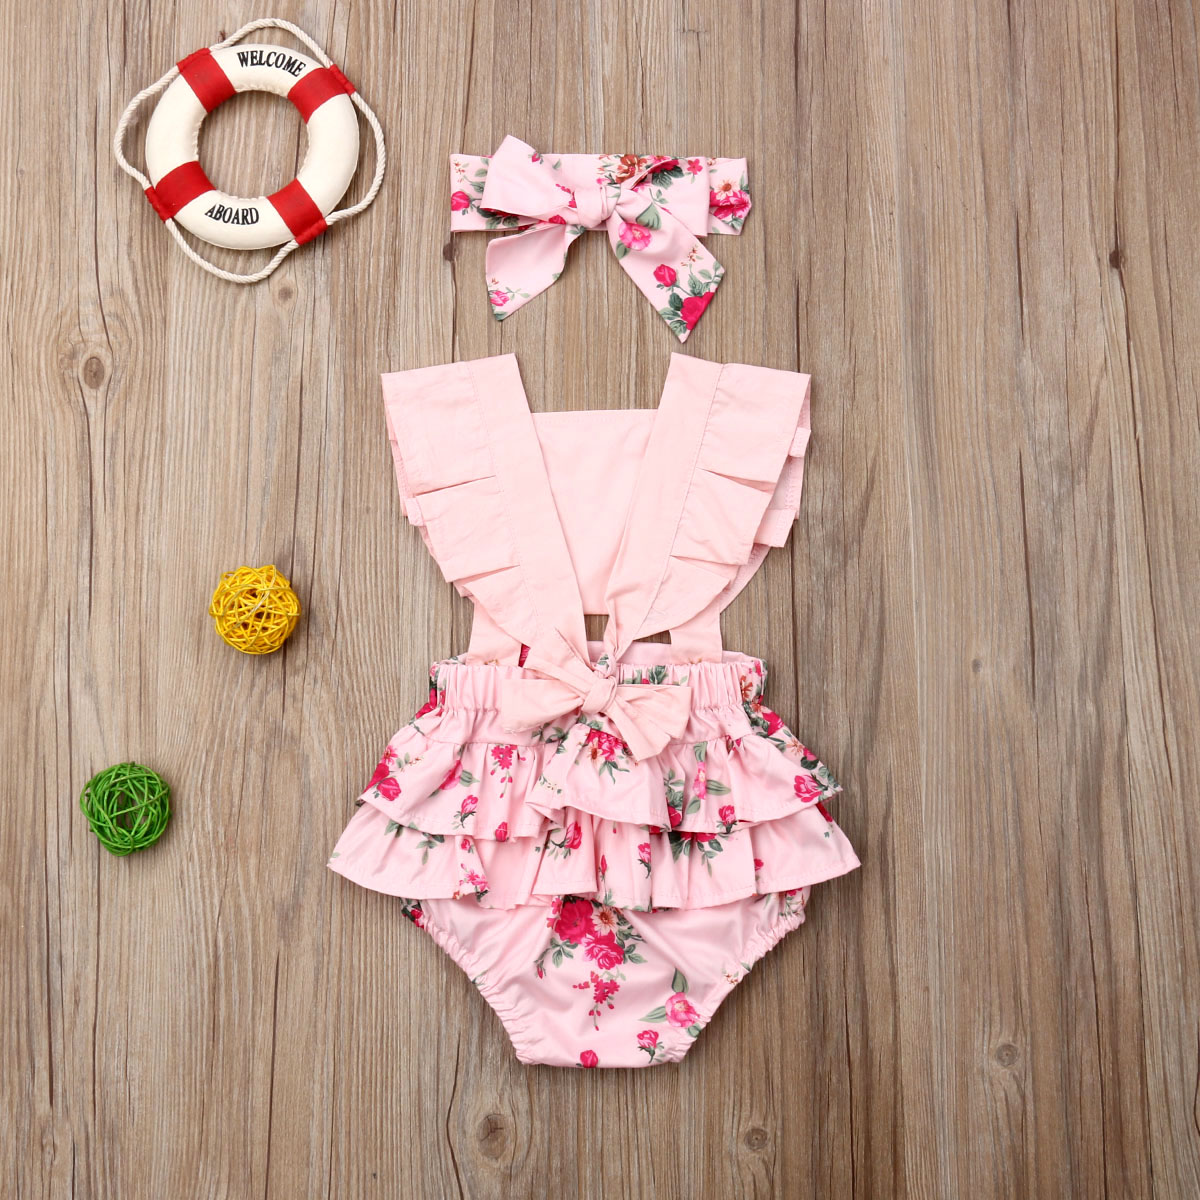 Pudcoco Summer Newborn Baby Girl Clothes Sleeveless Button Flower Print Romper Jumpsuit Bowknot Headband 2Pcs Outfits Clothes